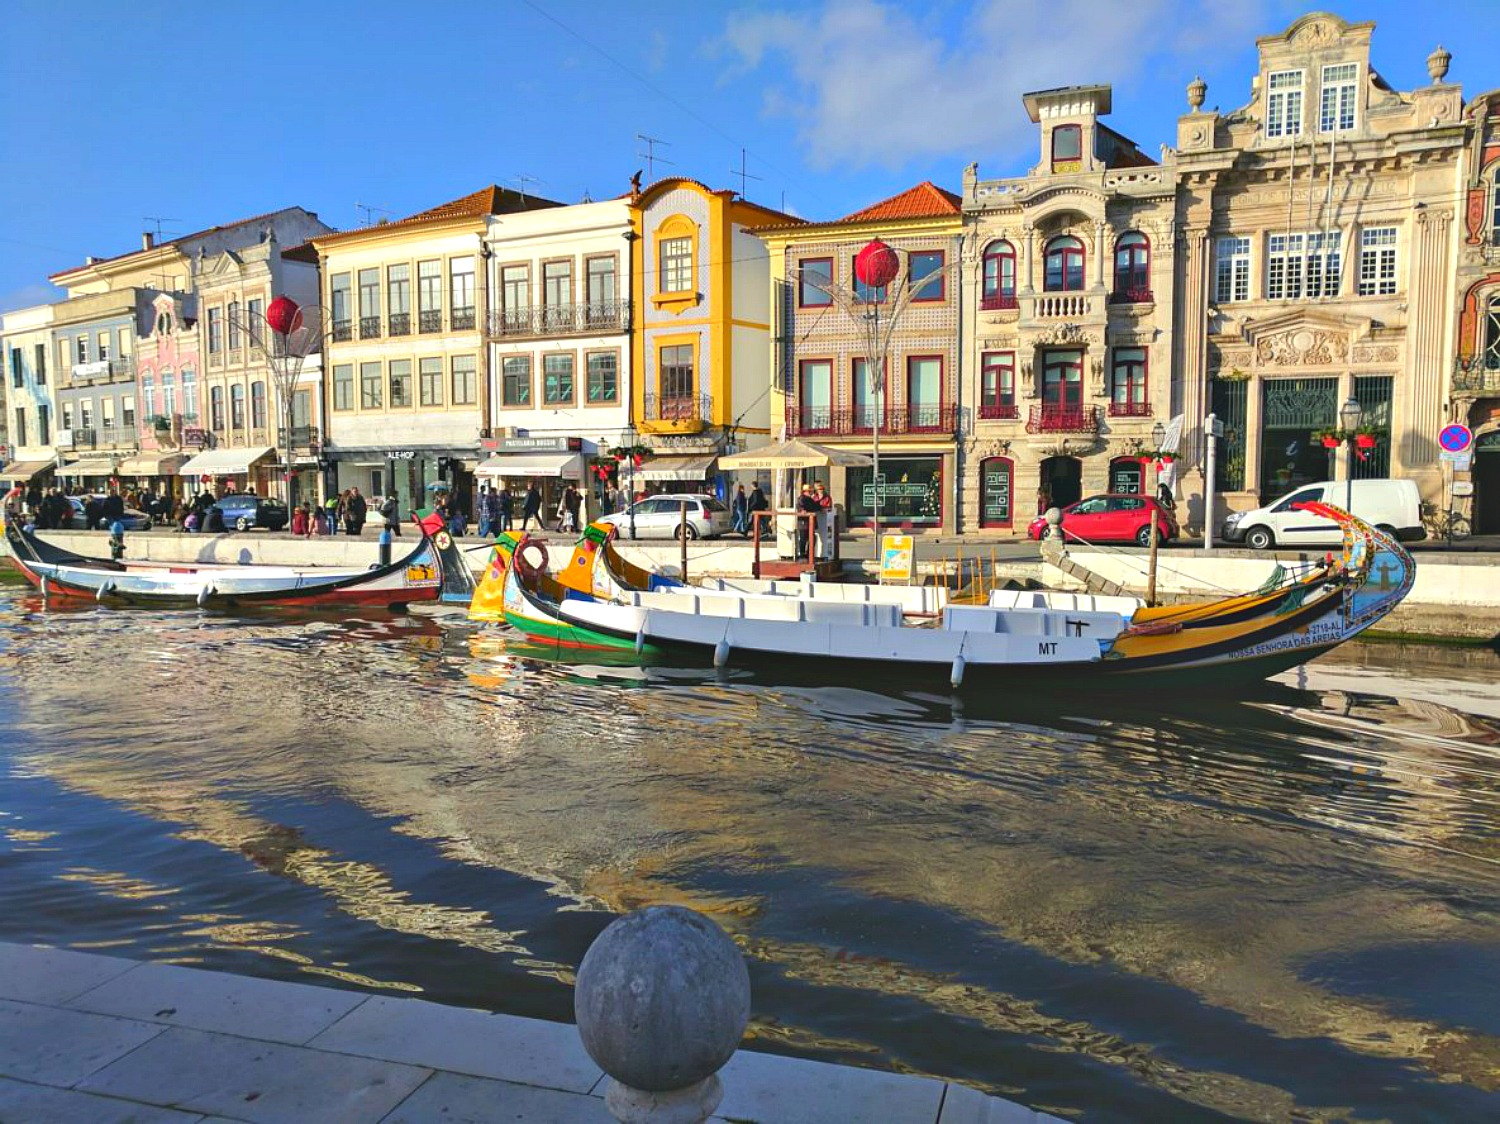 11 Top Reasons to Visit Portugal. Did you know that Portugal has its own little Venice called Aveiro?